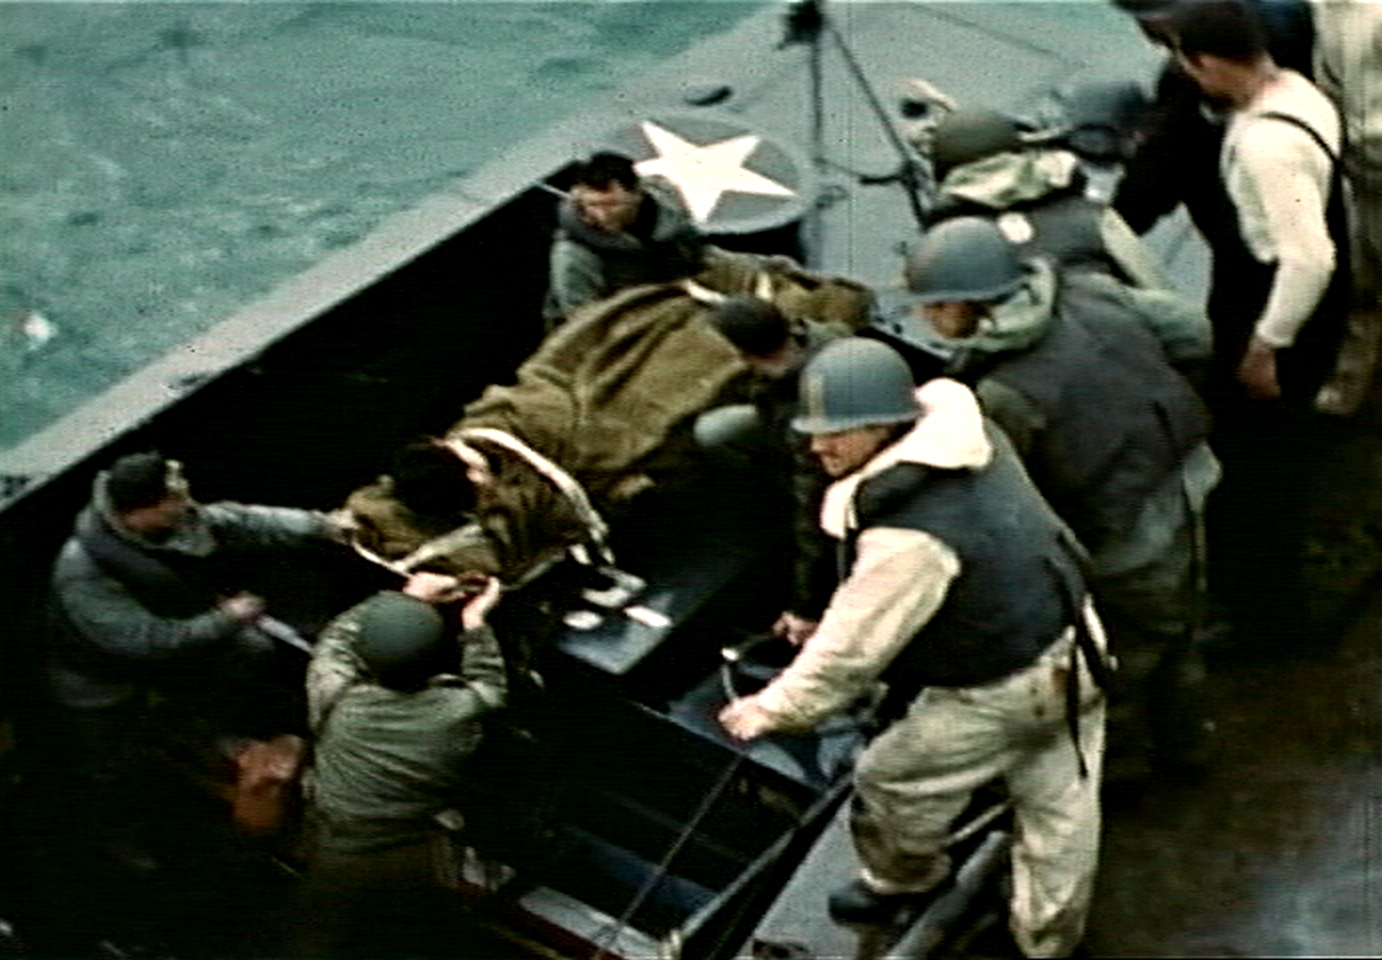 Fig. 14: Robert Capa, bottom left, aboard LCVP from USS Samuel Chase, assisting with transfer of casualty, D-Day, frame from film by David T. Ruley